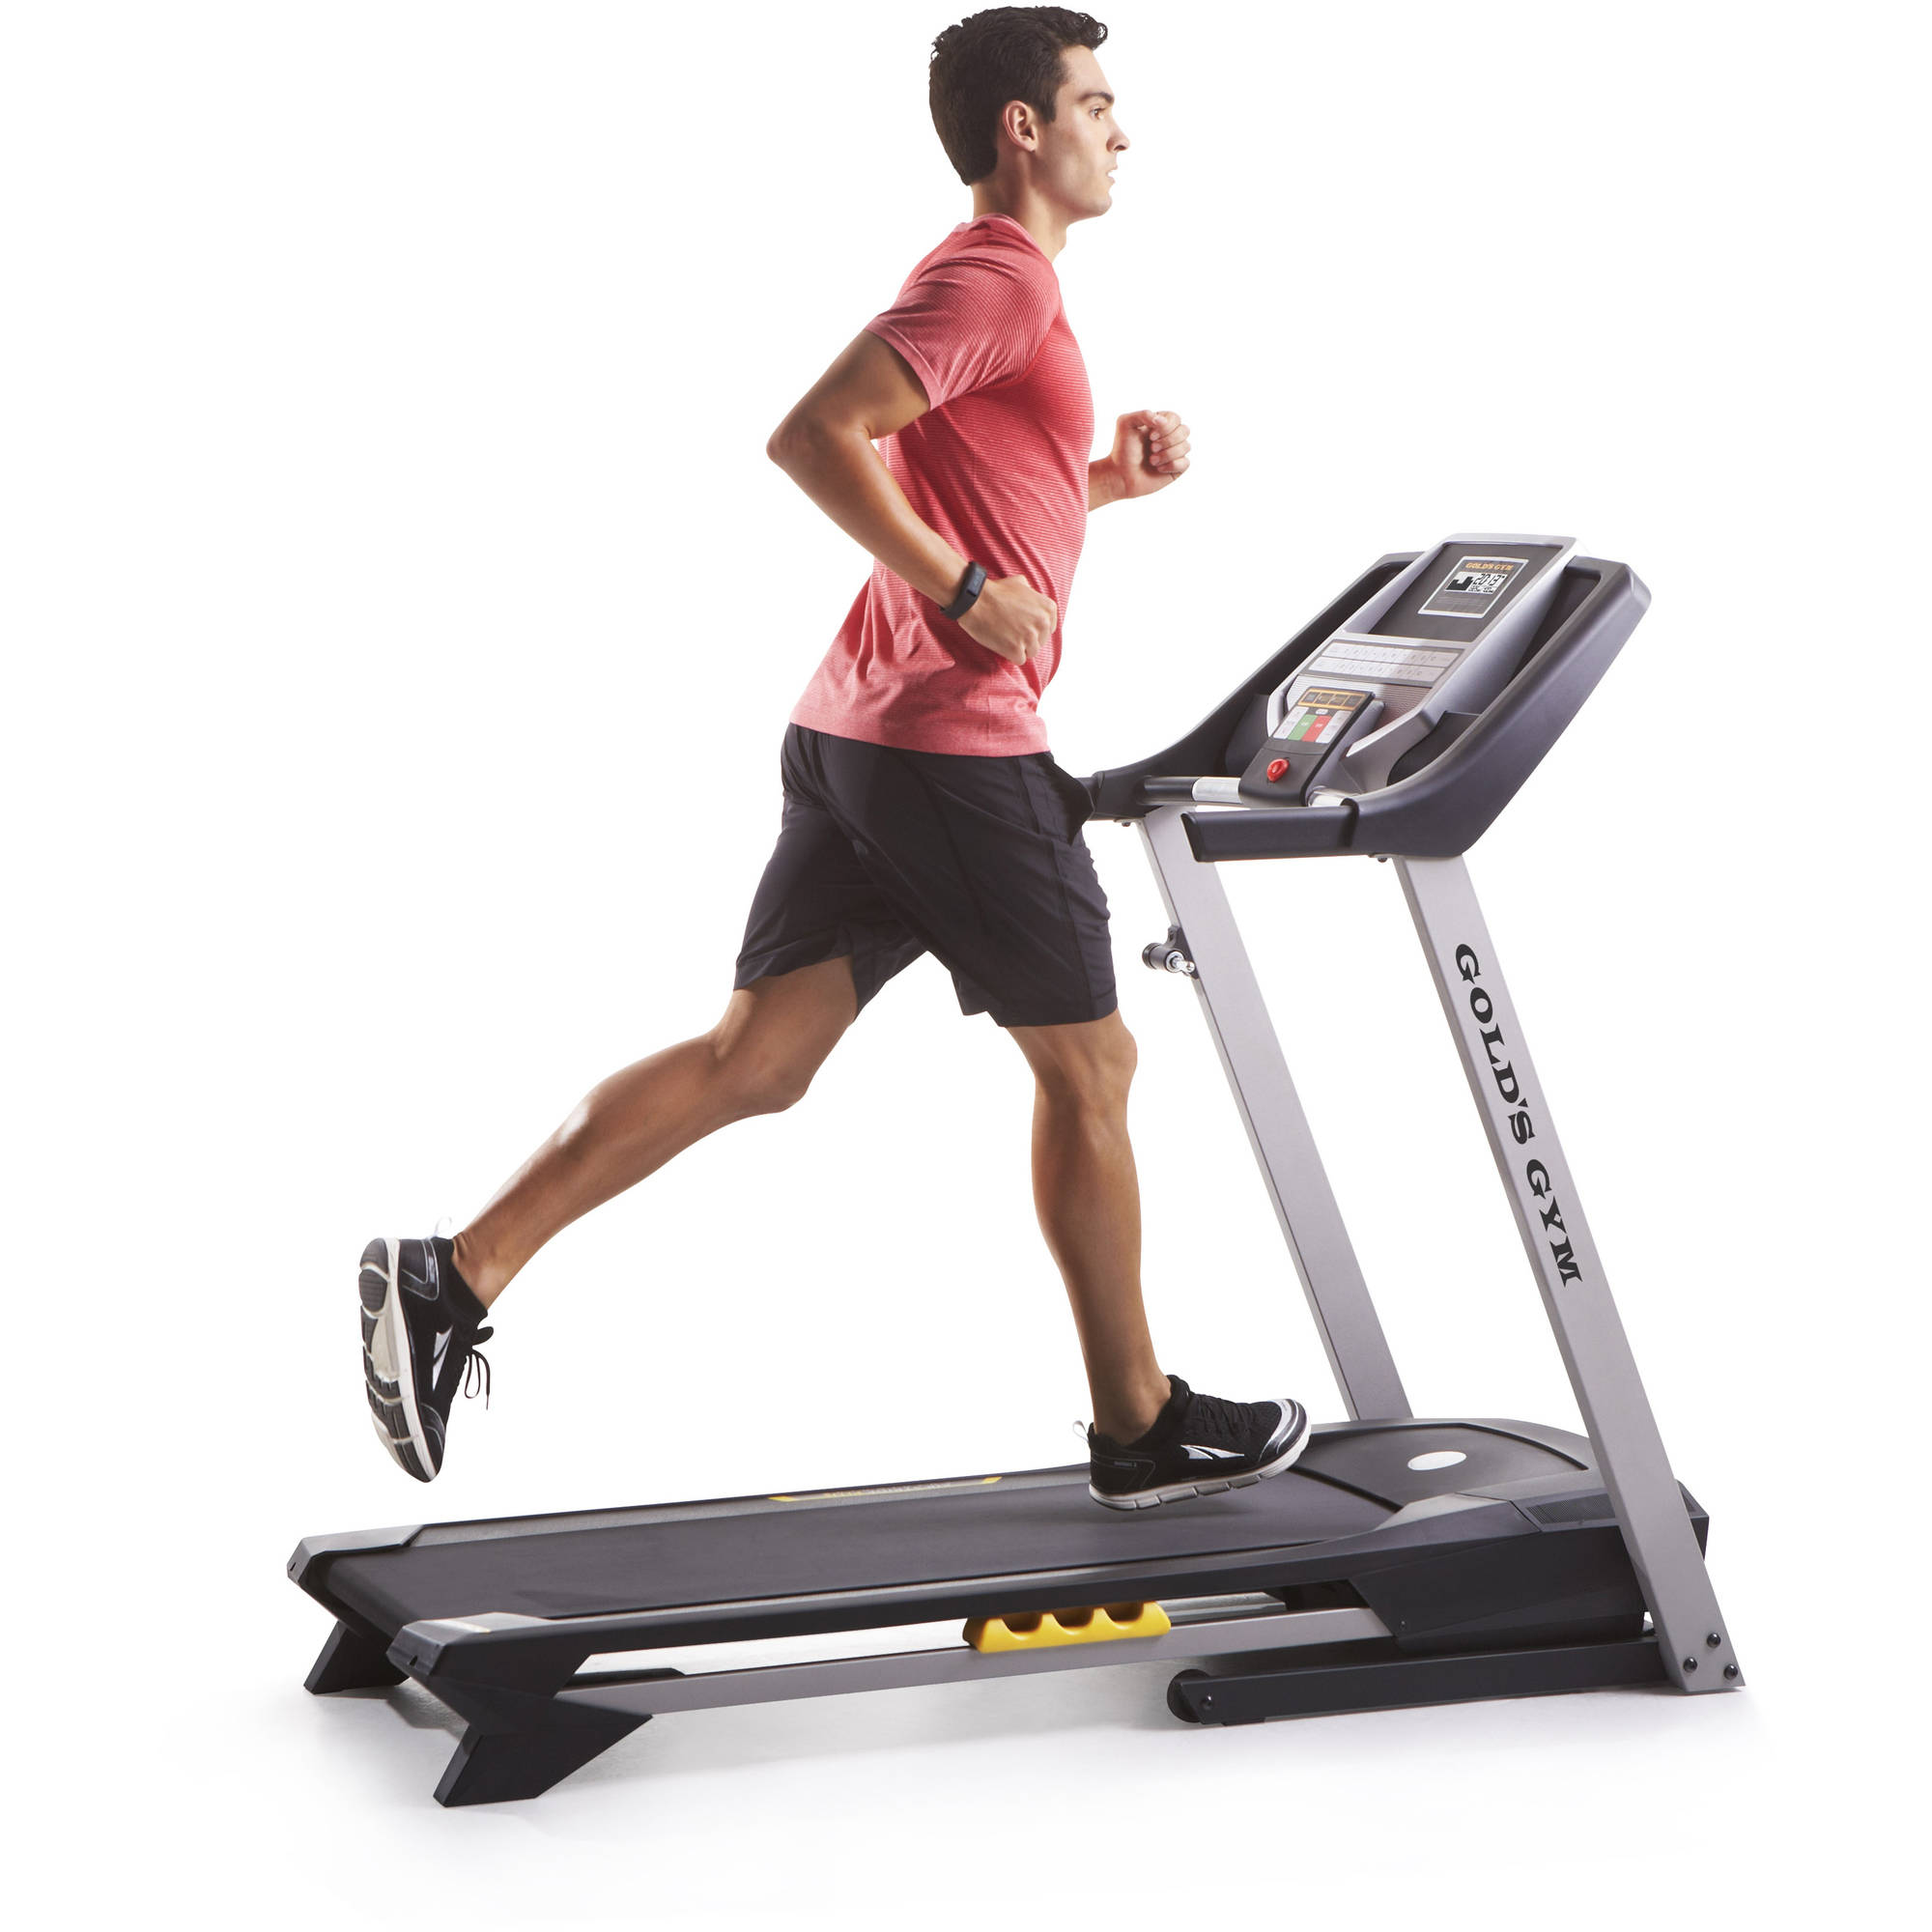 Gold's Gym Trainer 520 Treadmill by Icon Health & Fitness Inc.